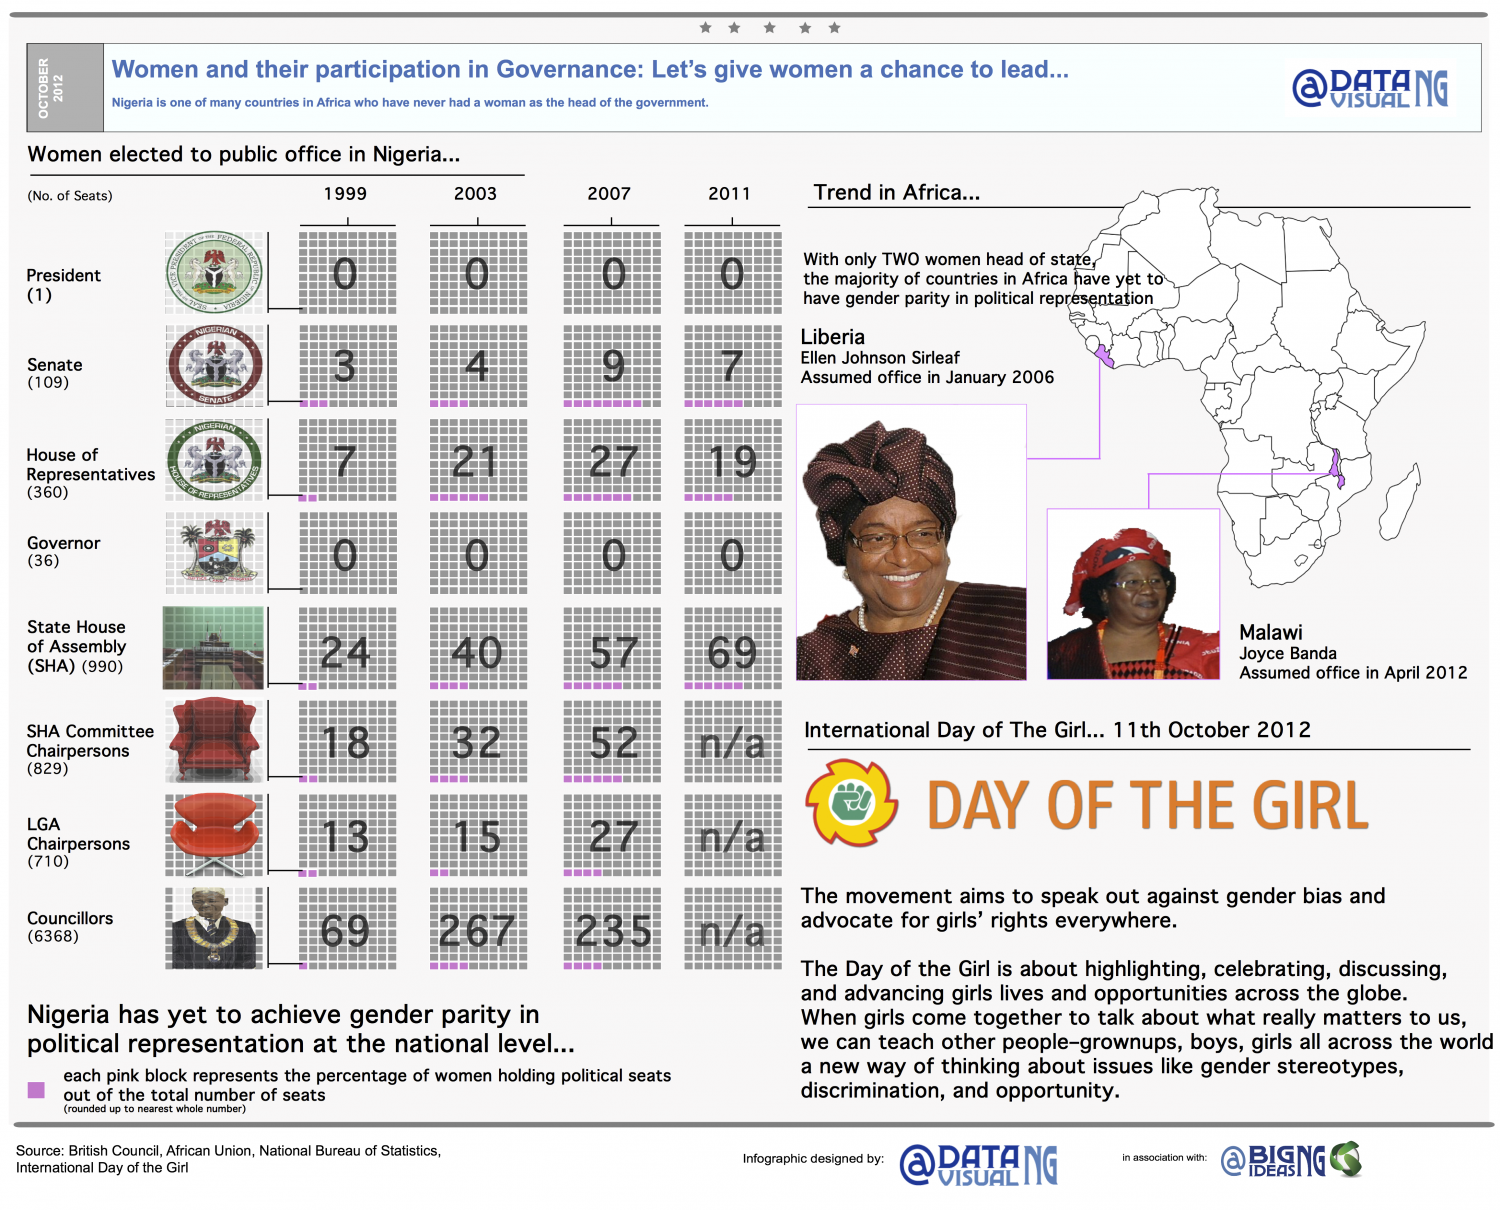 Women and their participation in governance Infographic